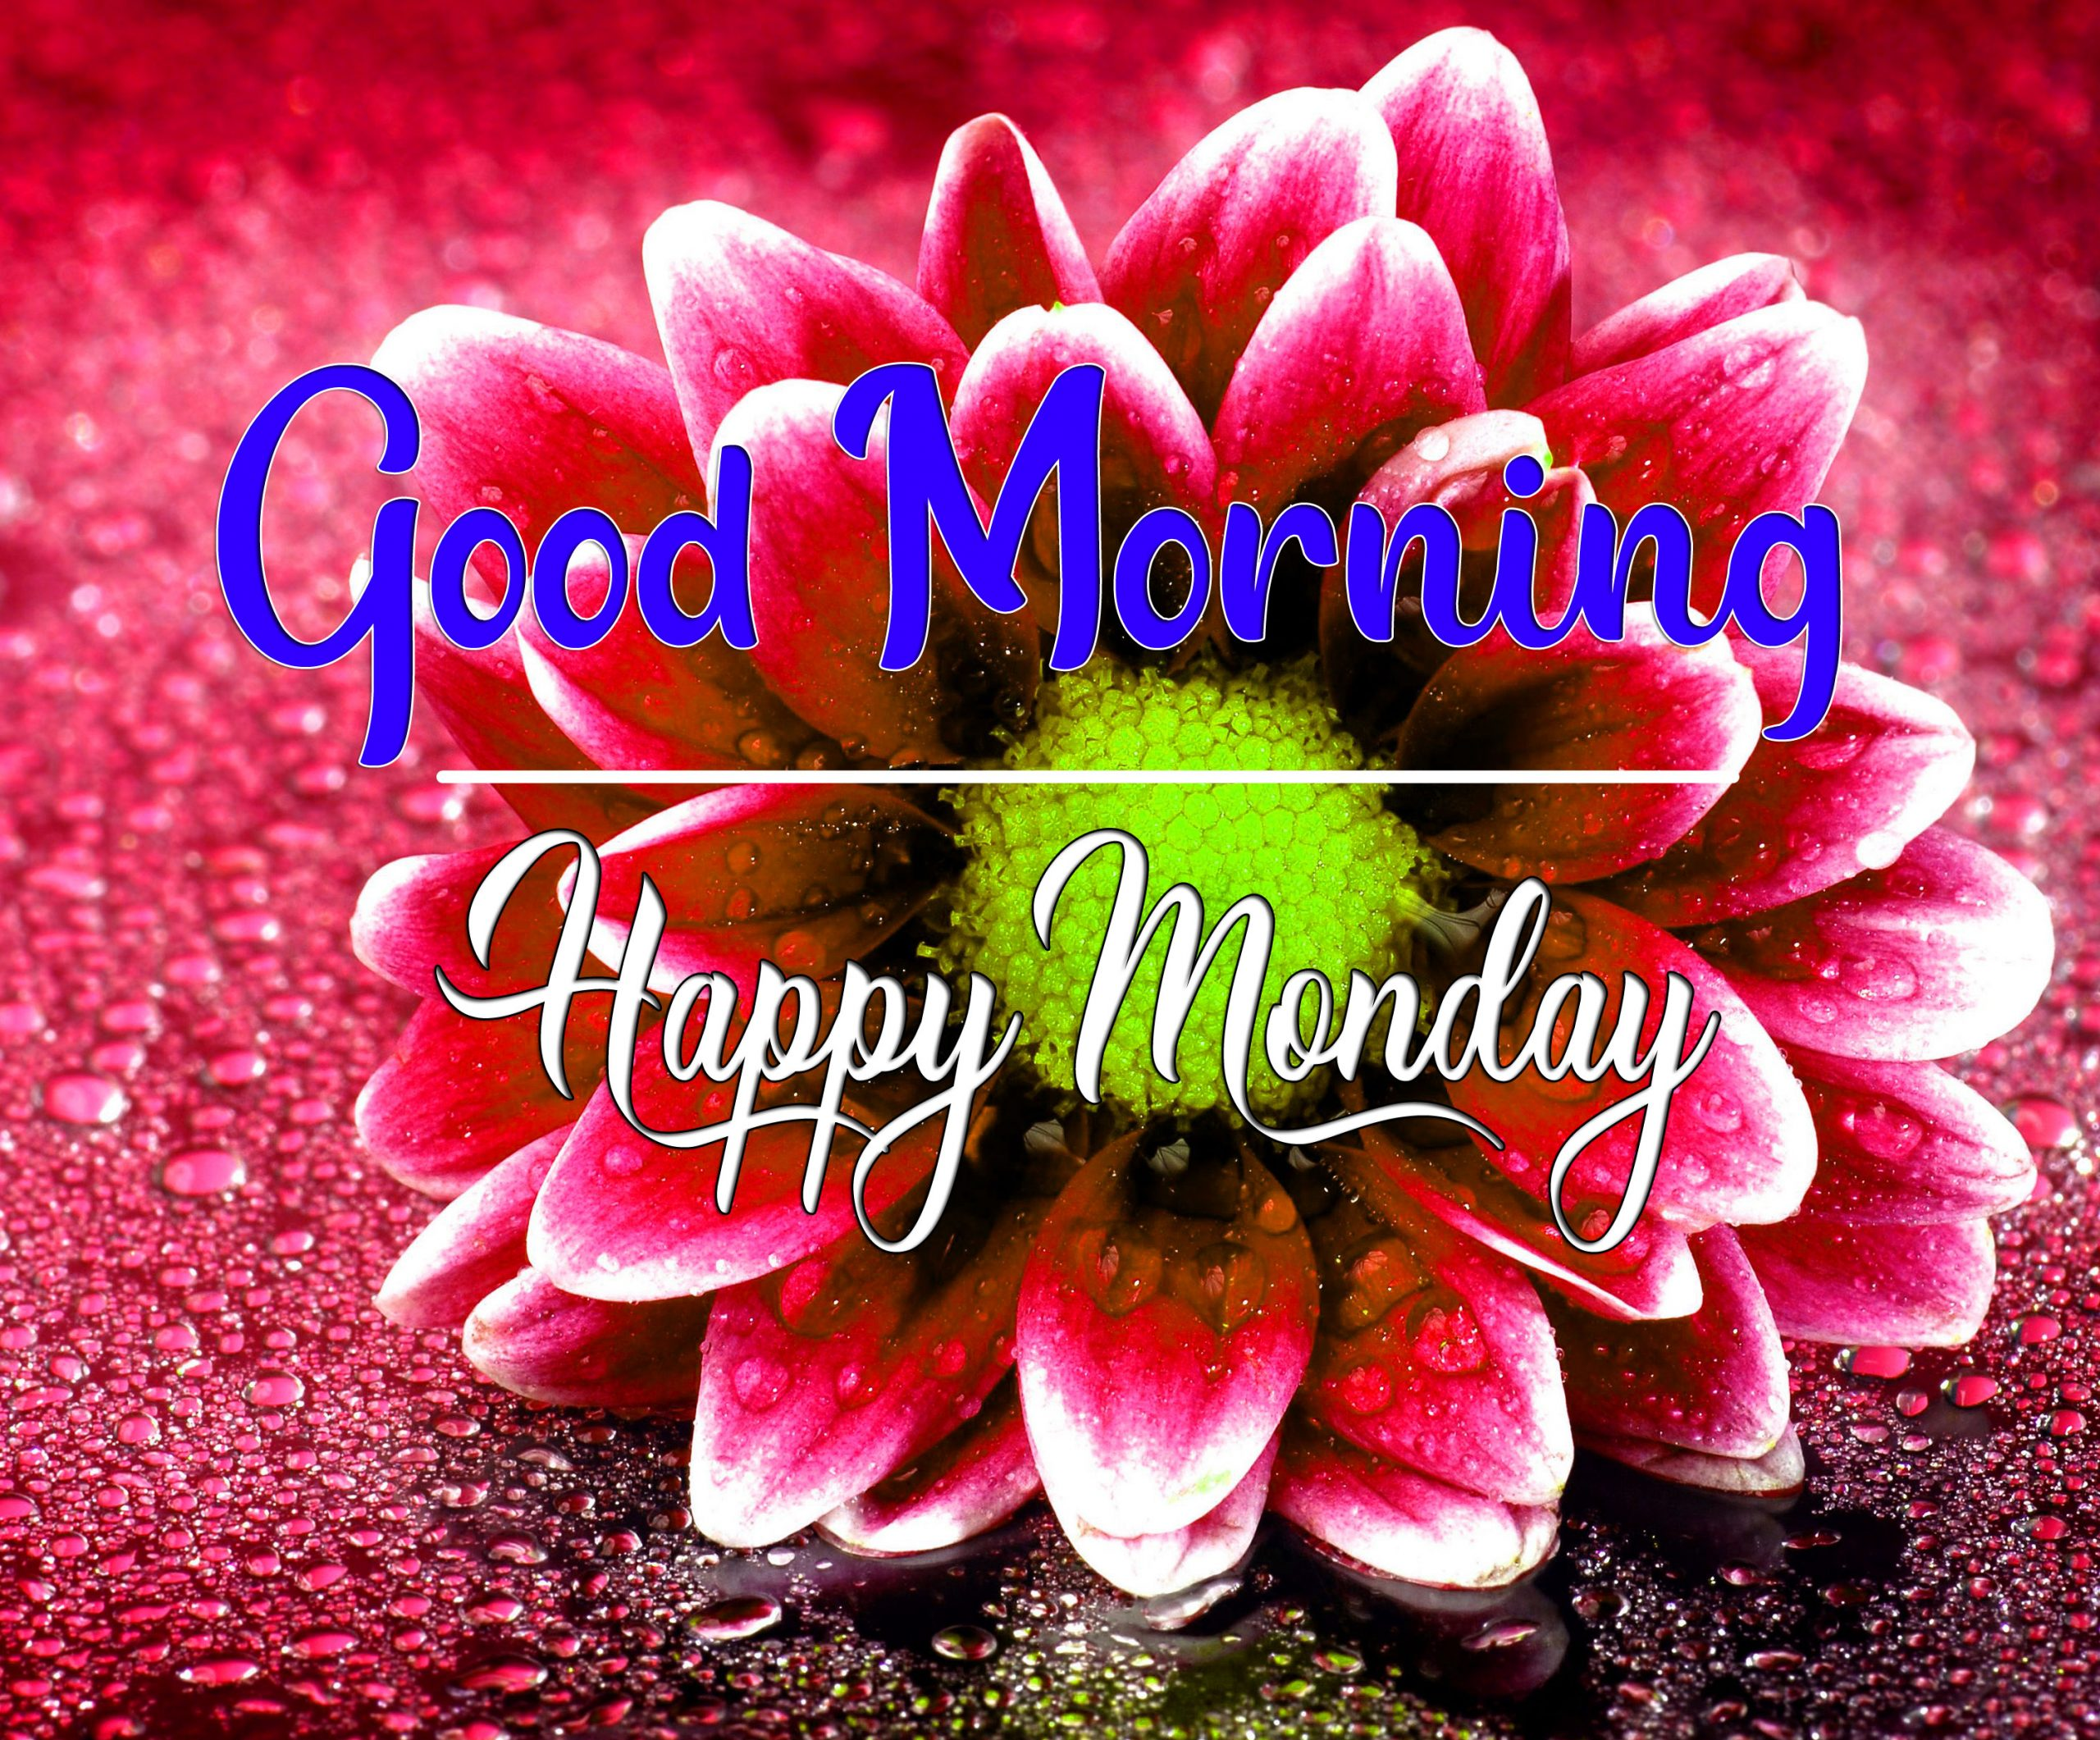 HD Best Monday Good Morning Images 1